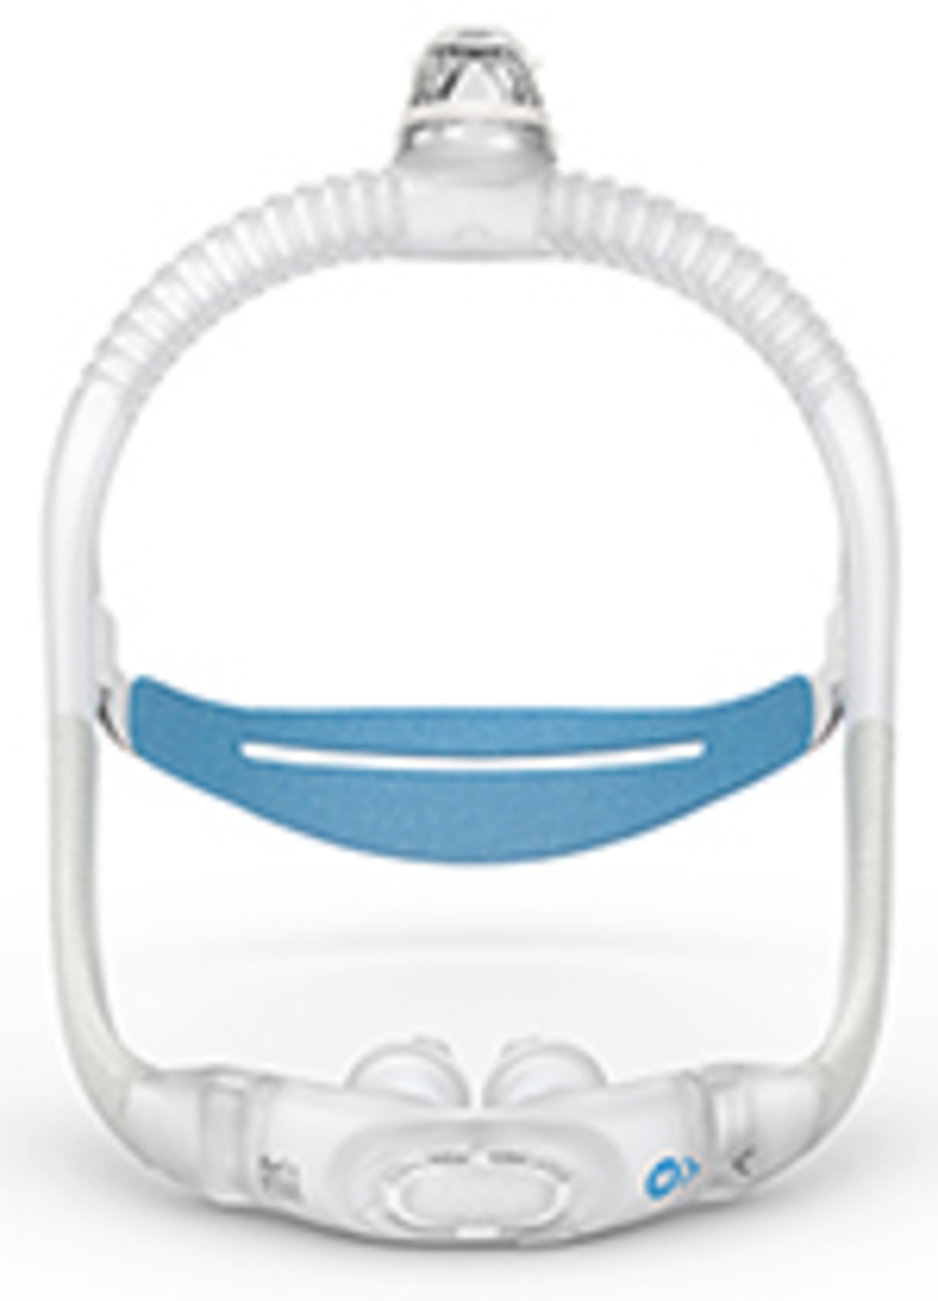 ResMed AirFit P30i Nasal Pillow Mask